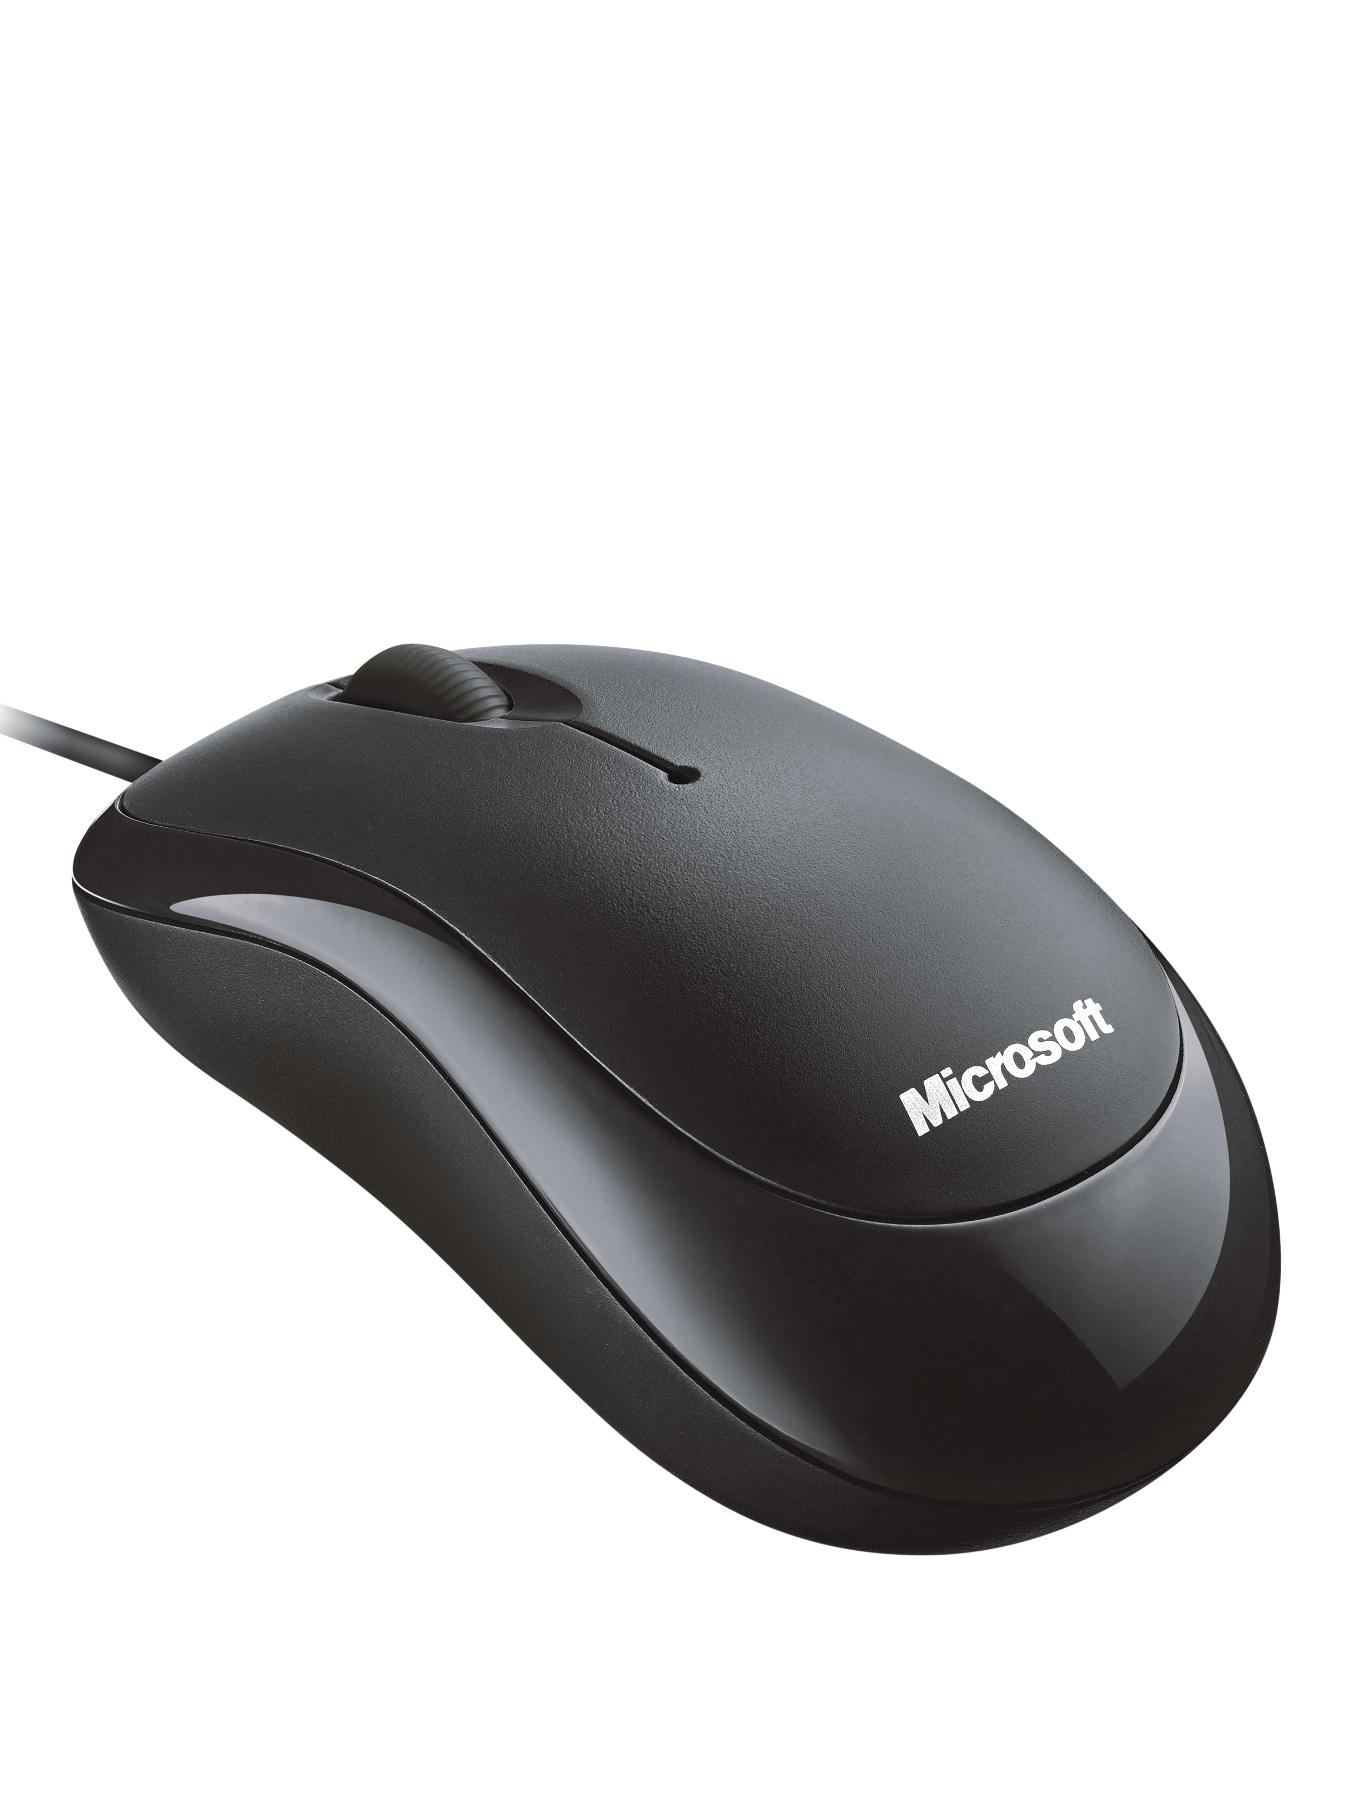 Basic Optical Mouse - Black